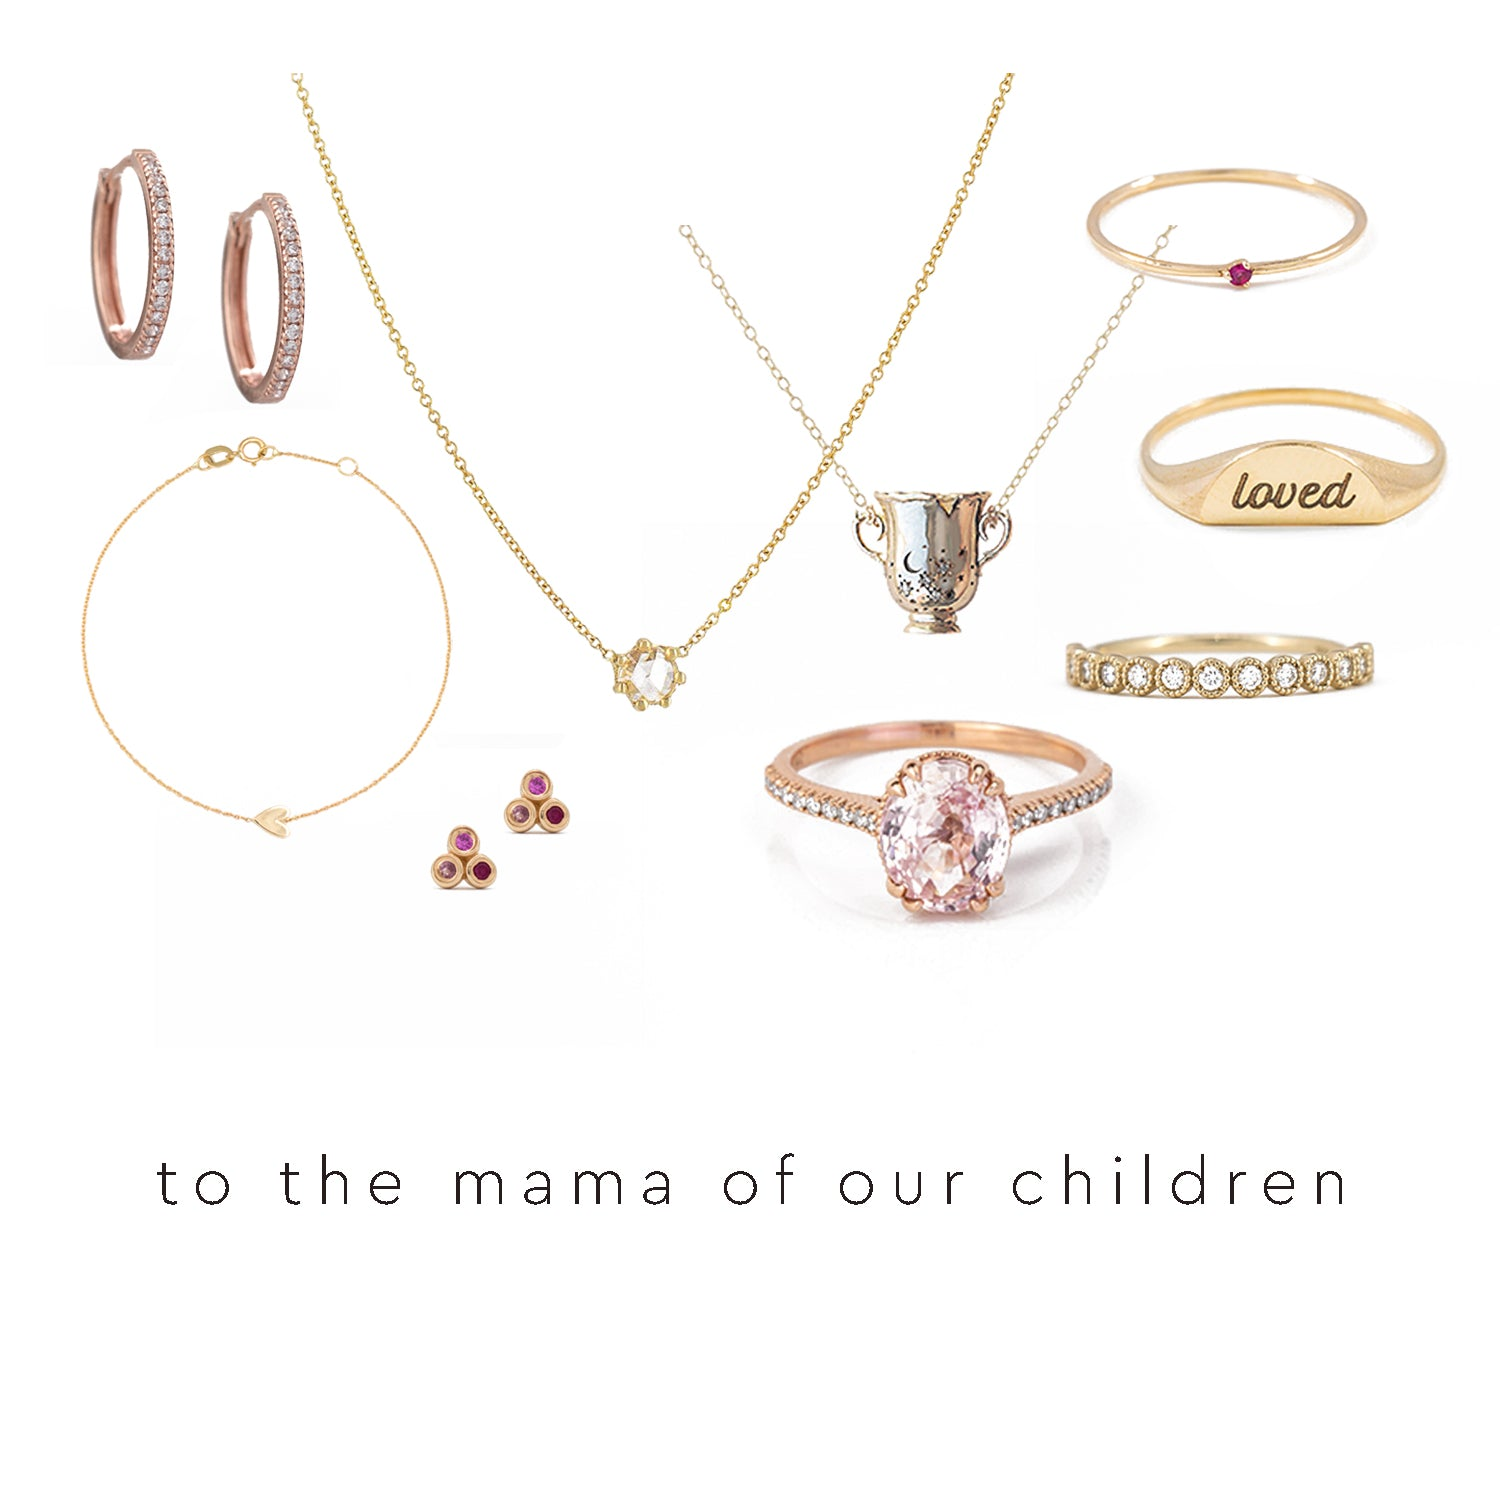 mothers day gift guide for the mother of our children